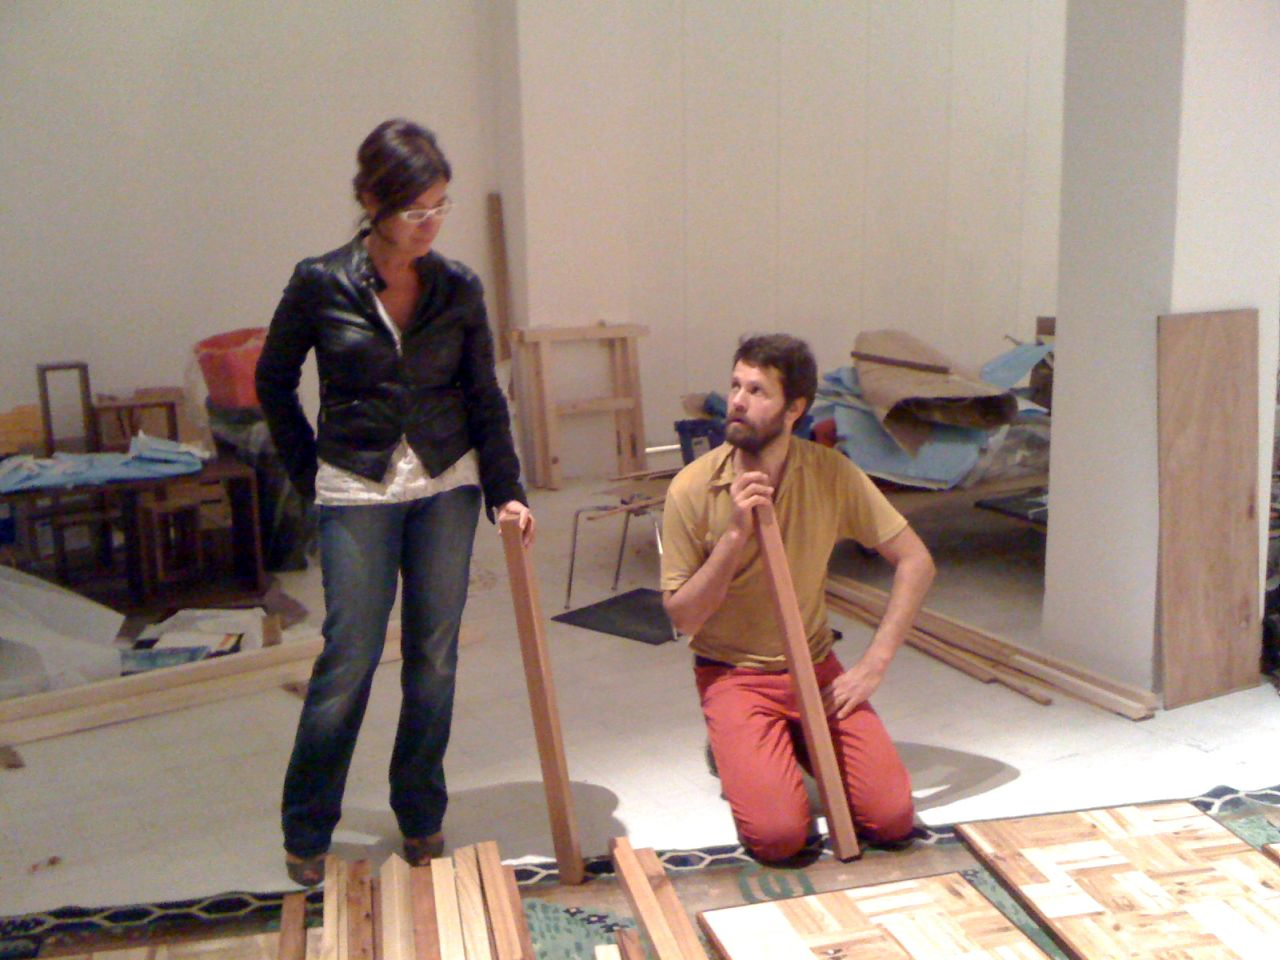 With Martino Gamper on the set of the the exhibition Stanze e Camere + 100 Chairs in 100 Days, Triennale di Milano, 2009